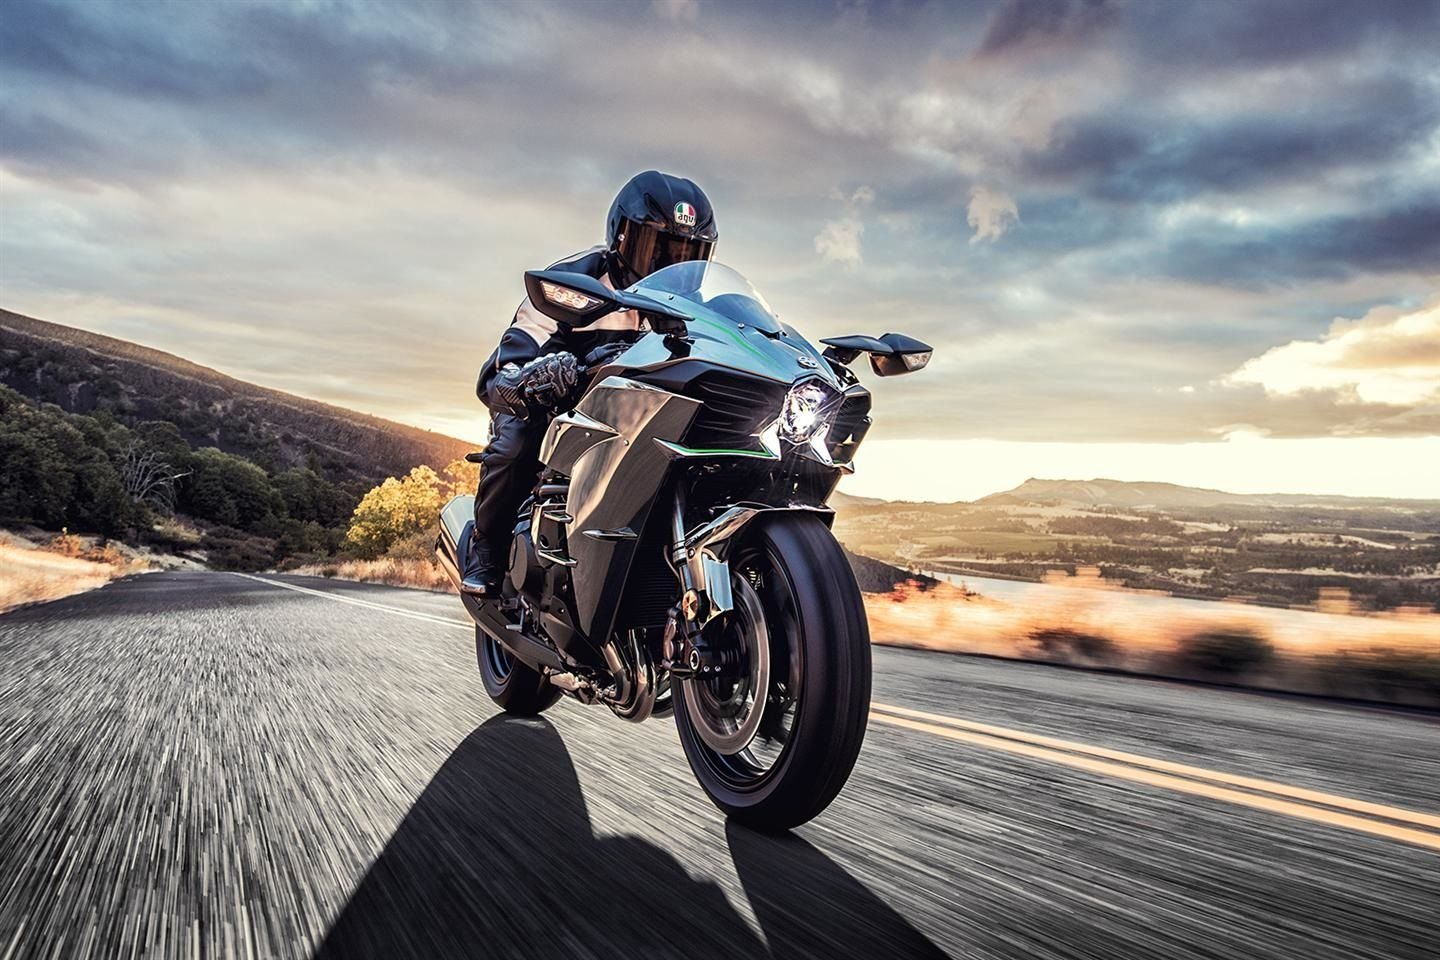 10 Sportbikes Everyone Should Ride At Least Once